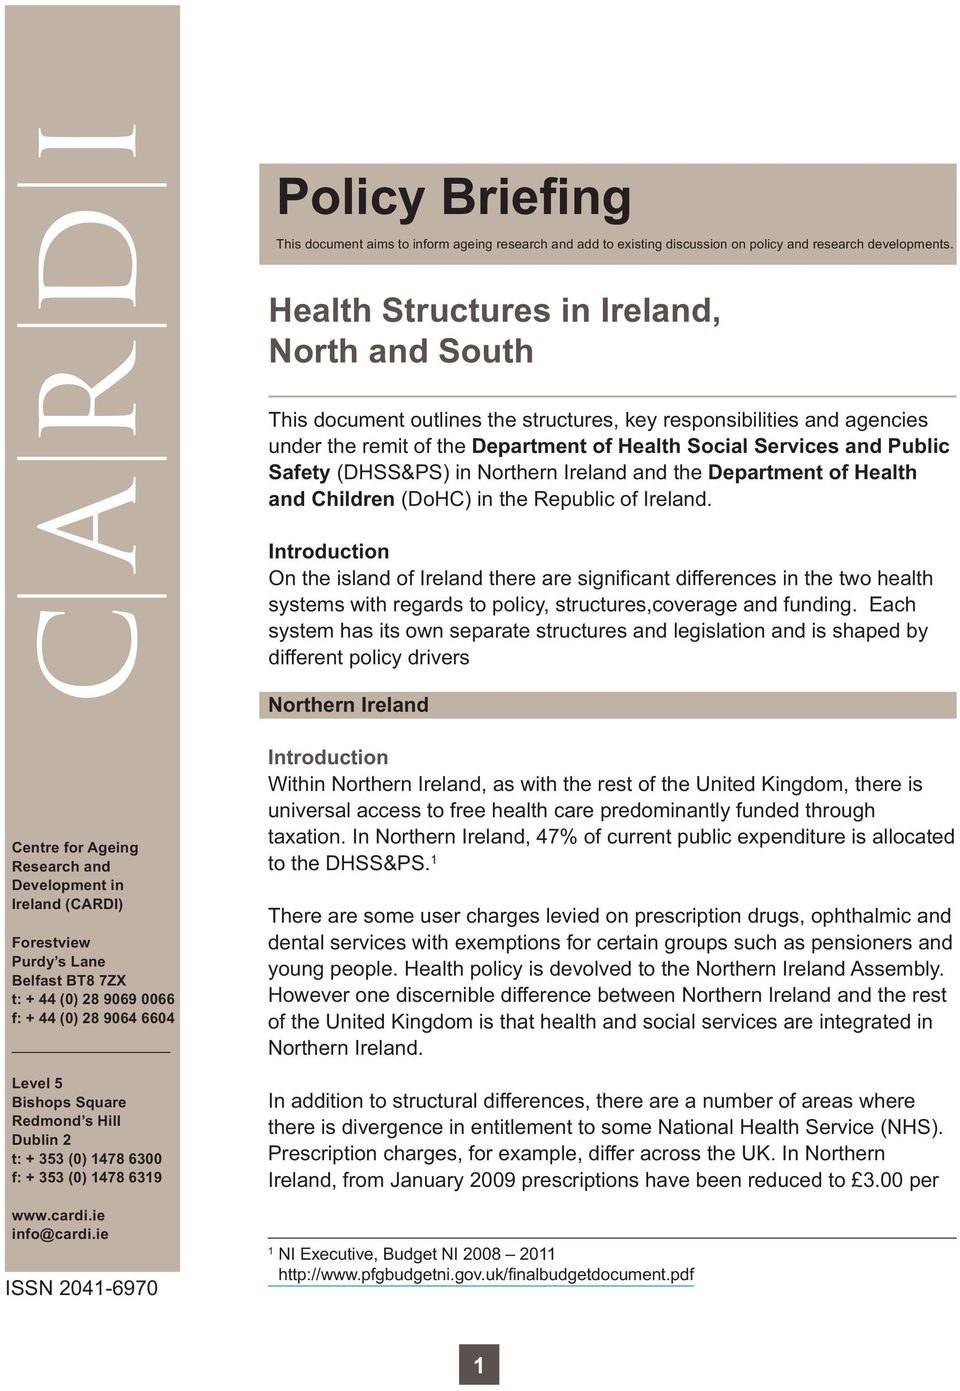 (DHSS&PS) in Northern Ireland and the Department of Health and Children (DoHC) in the Republic of Ireland.